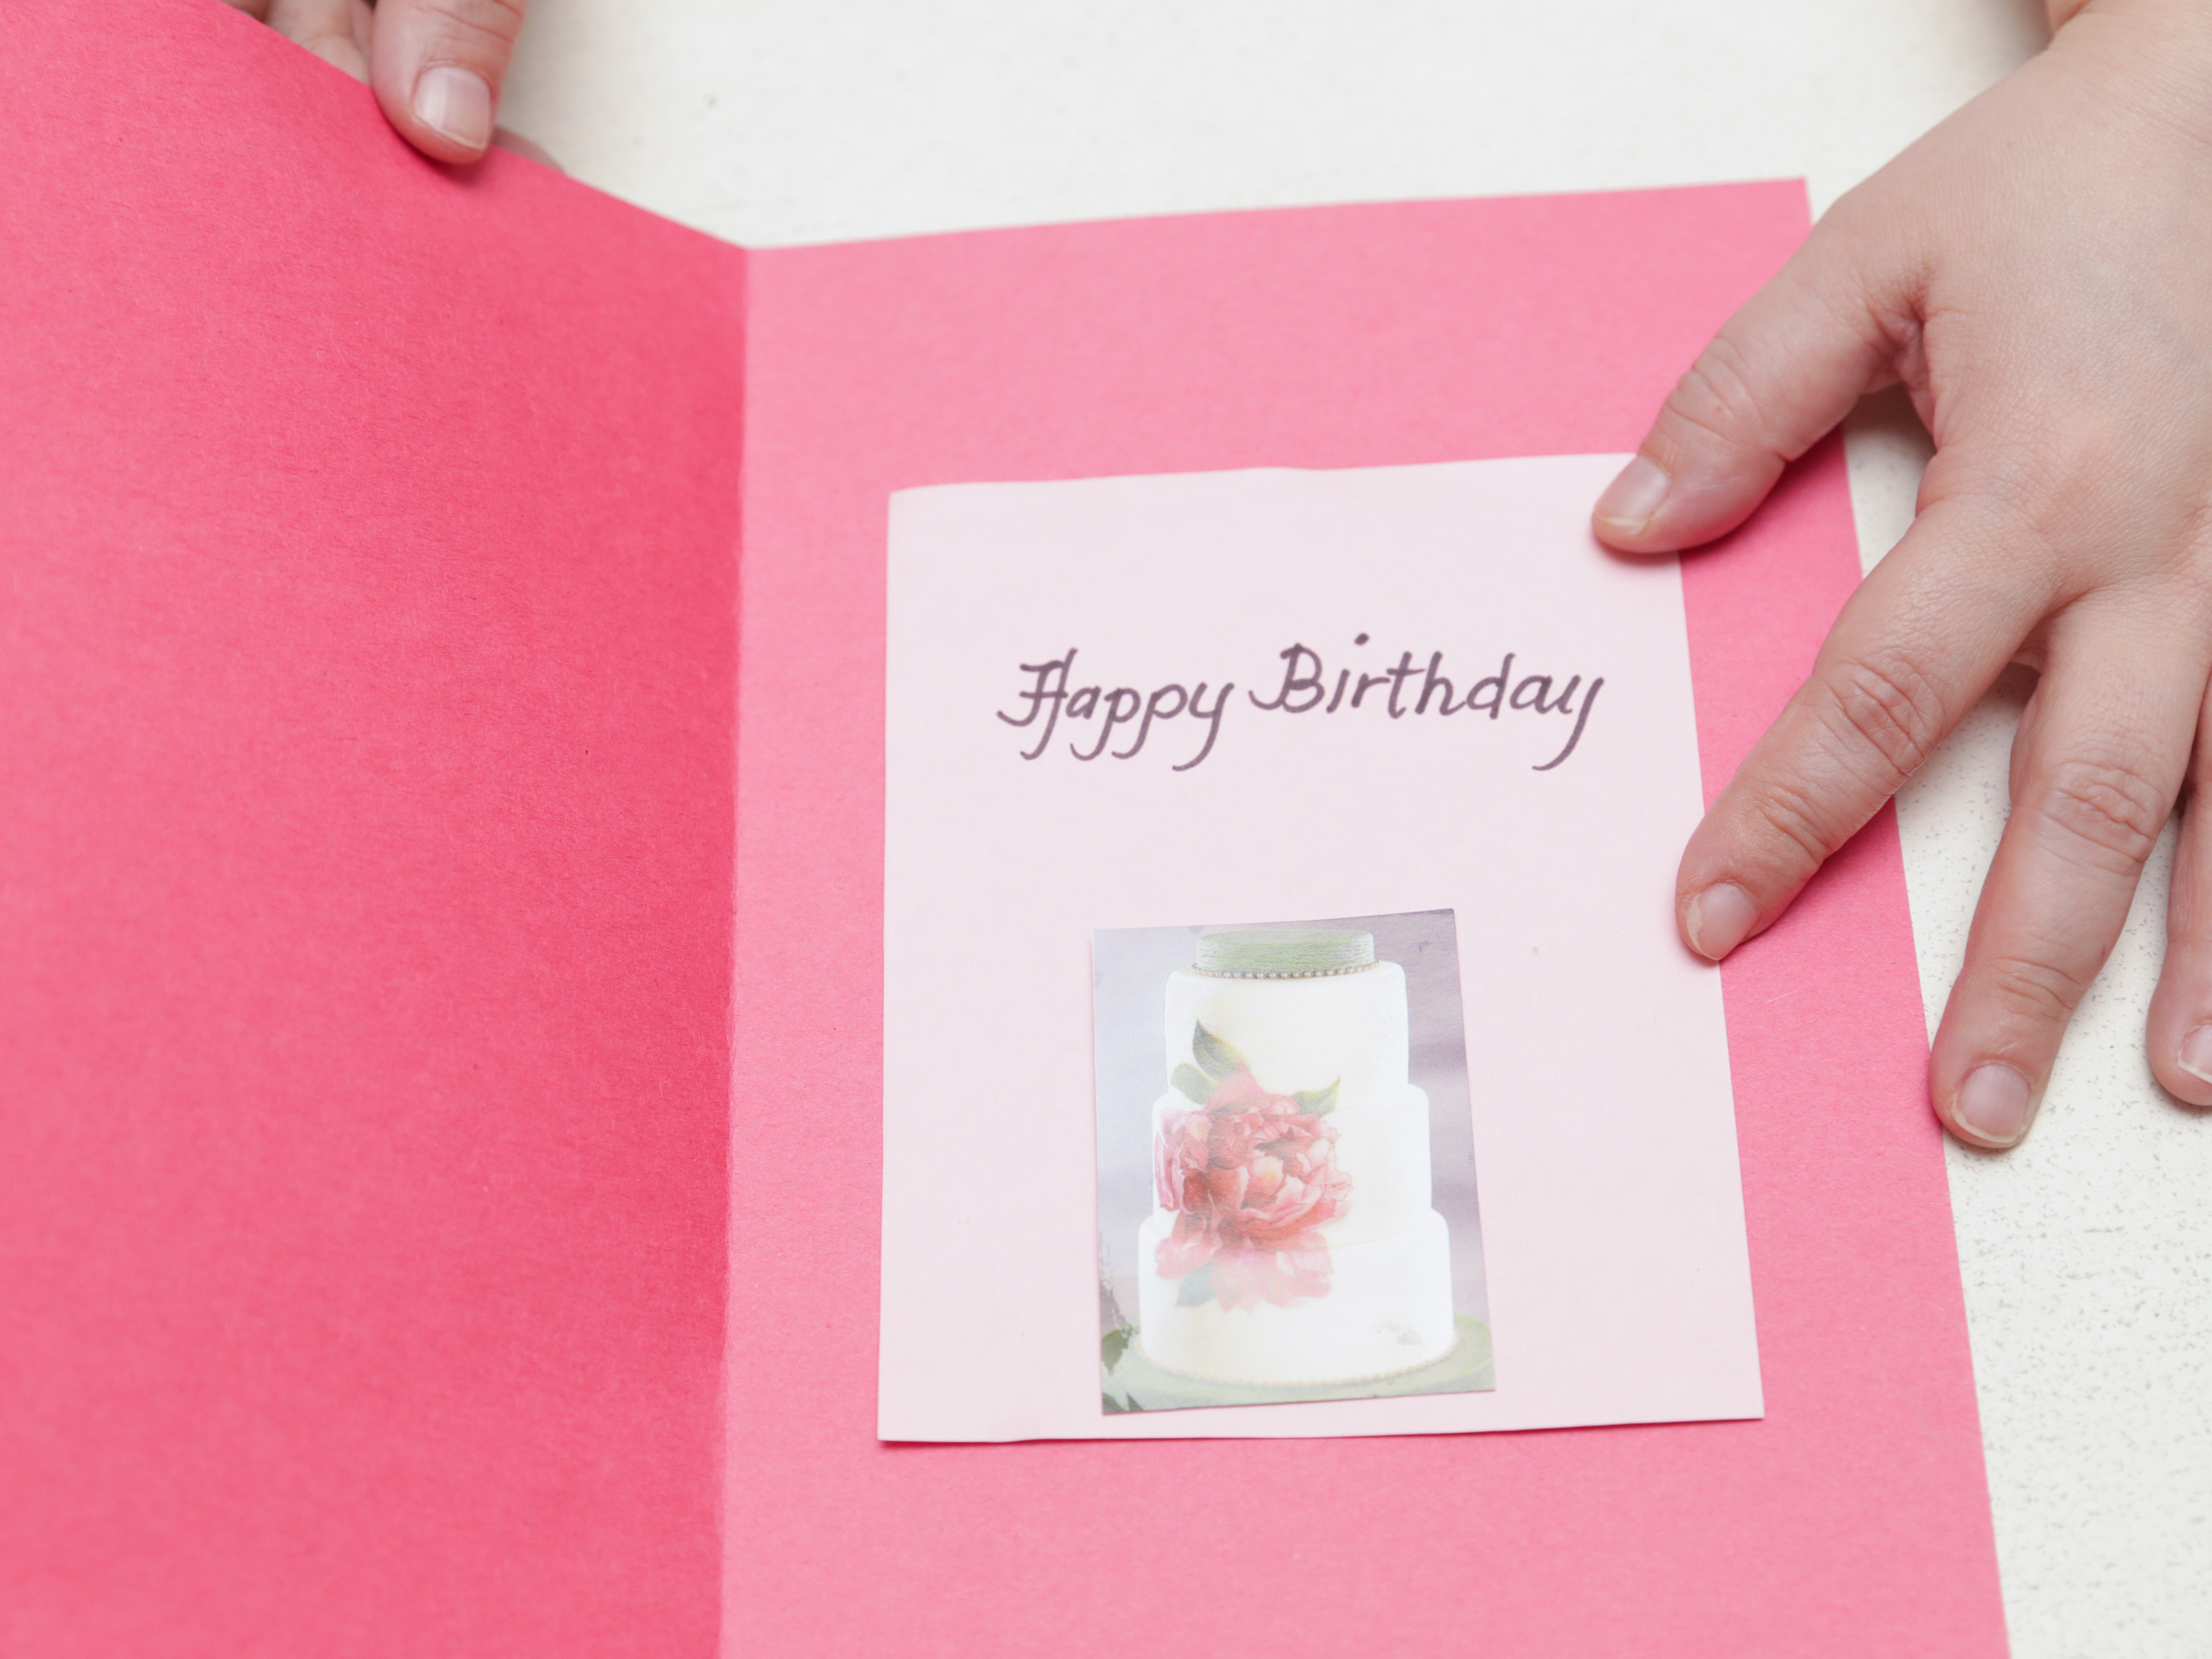 Make A Birthday Card Online  4 Ways to Make a Simple Birthday Card at Home wikiHow